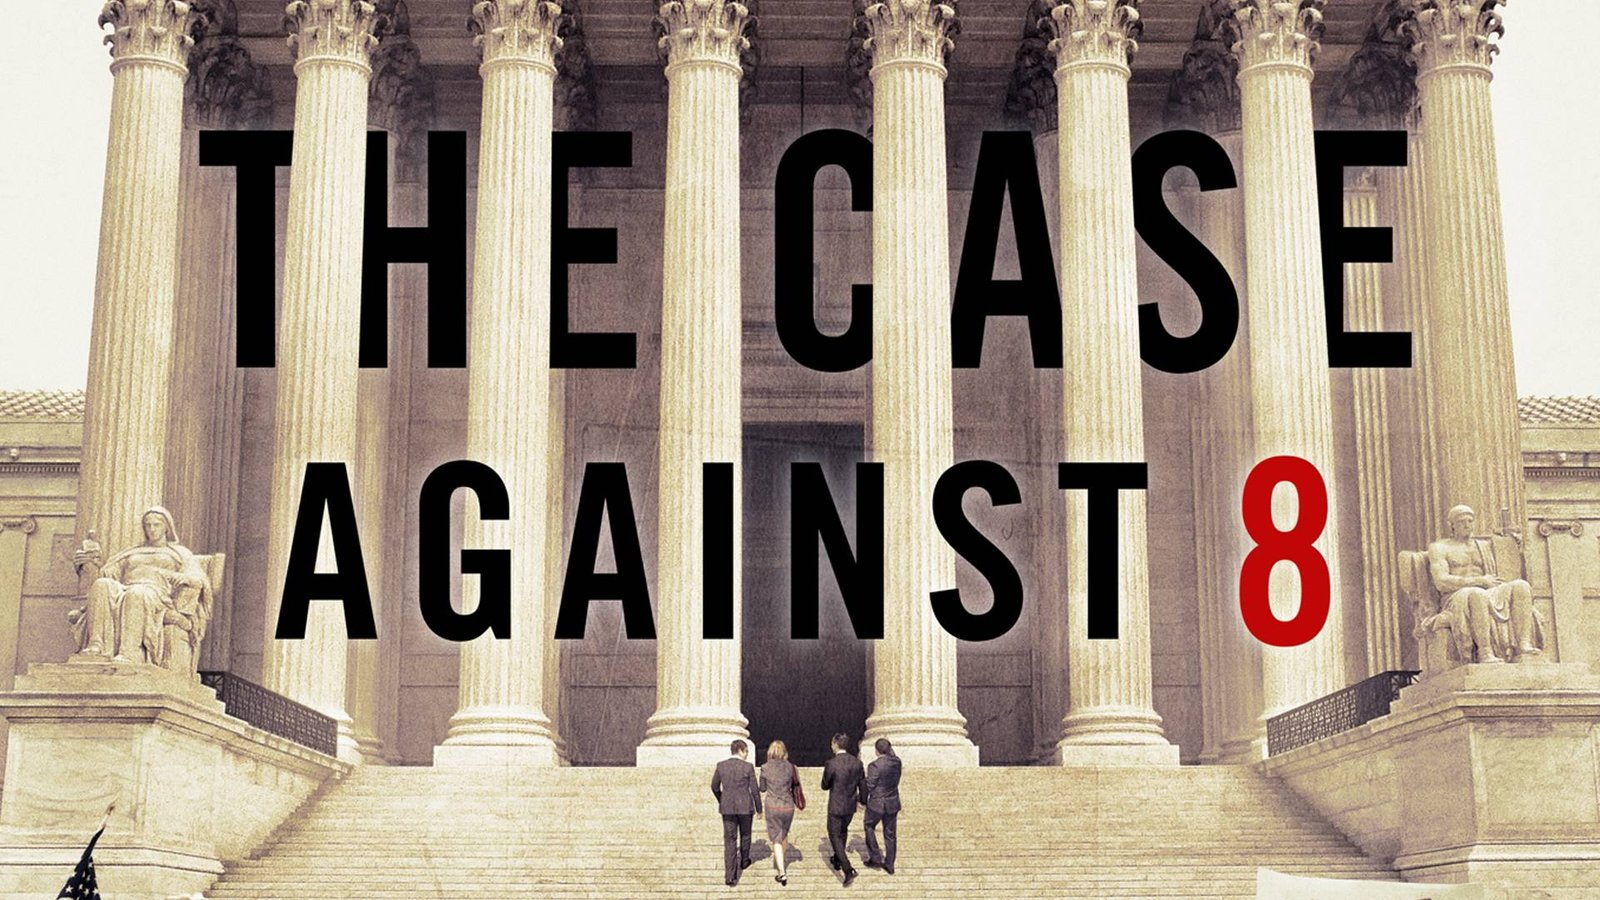 The Case Against 8 - Following Gay Marriage Rights to the Supreme Court